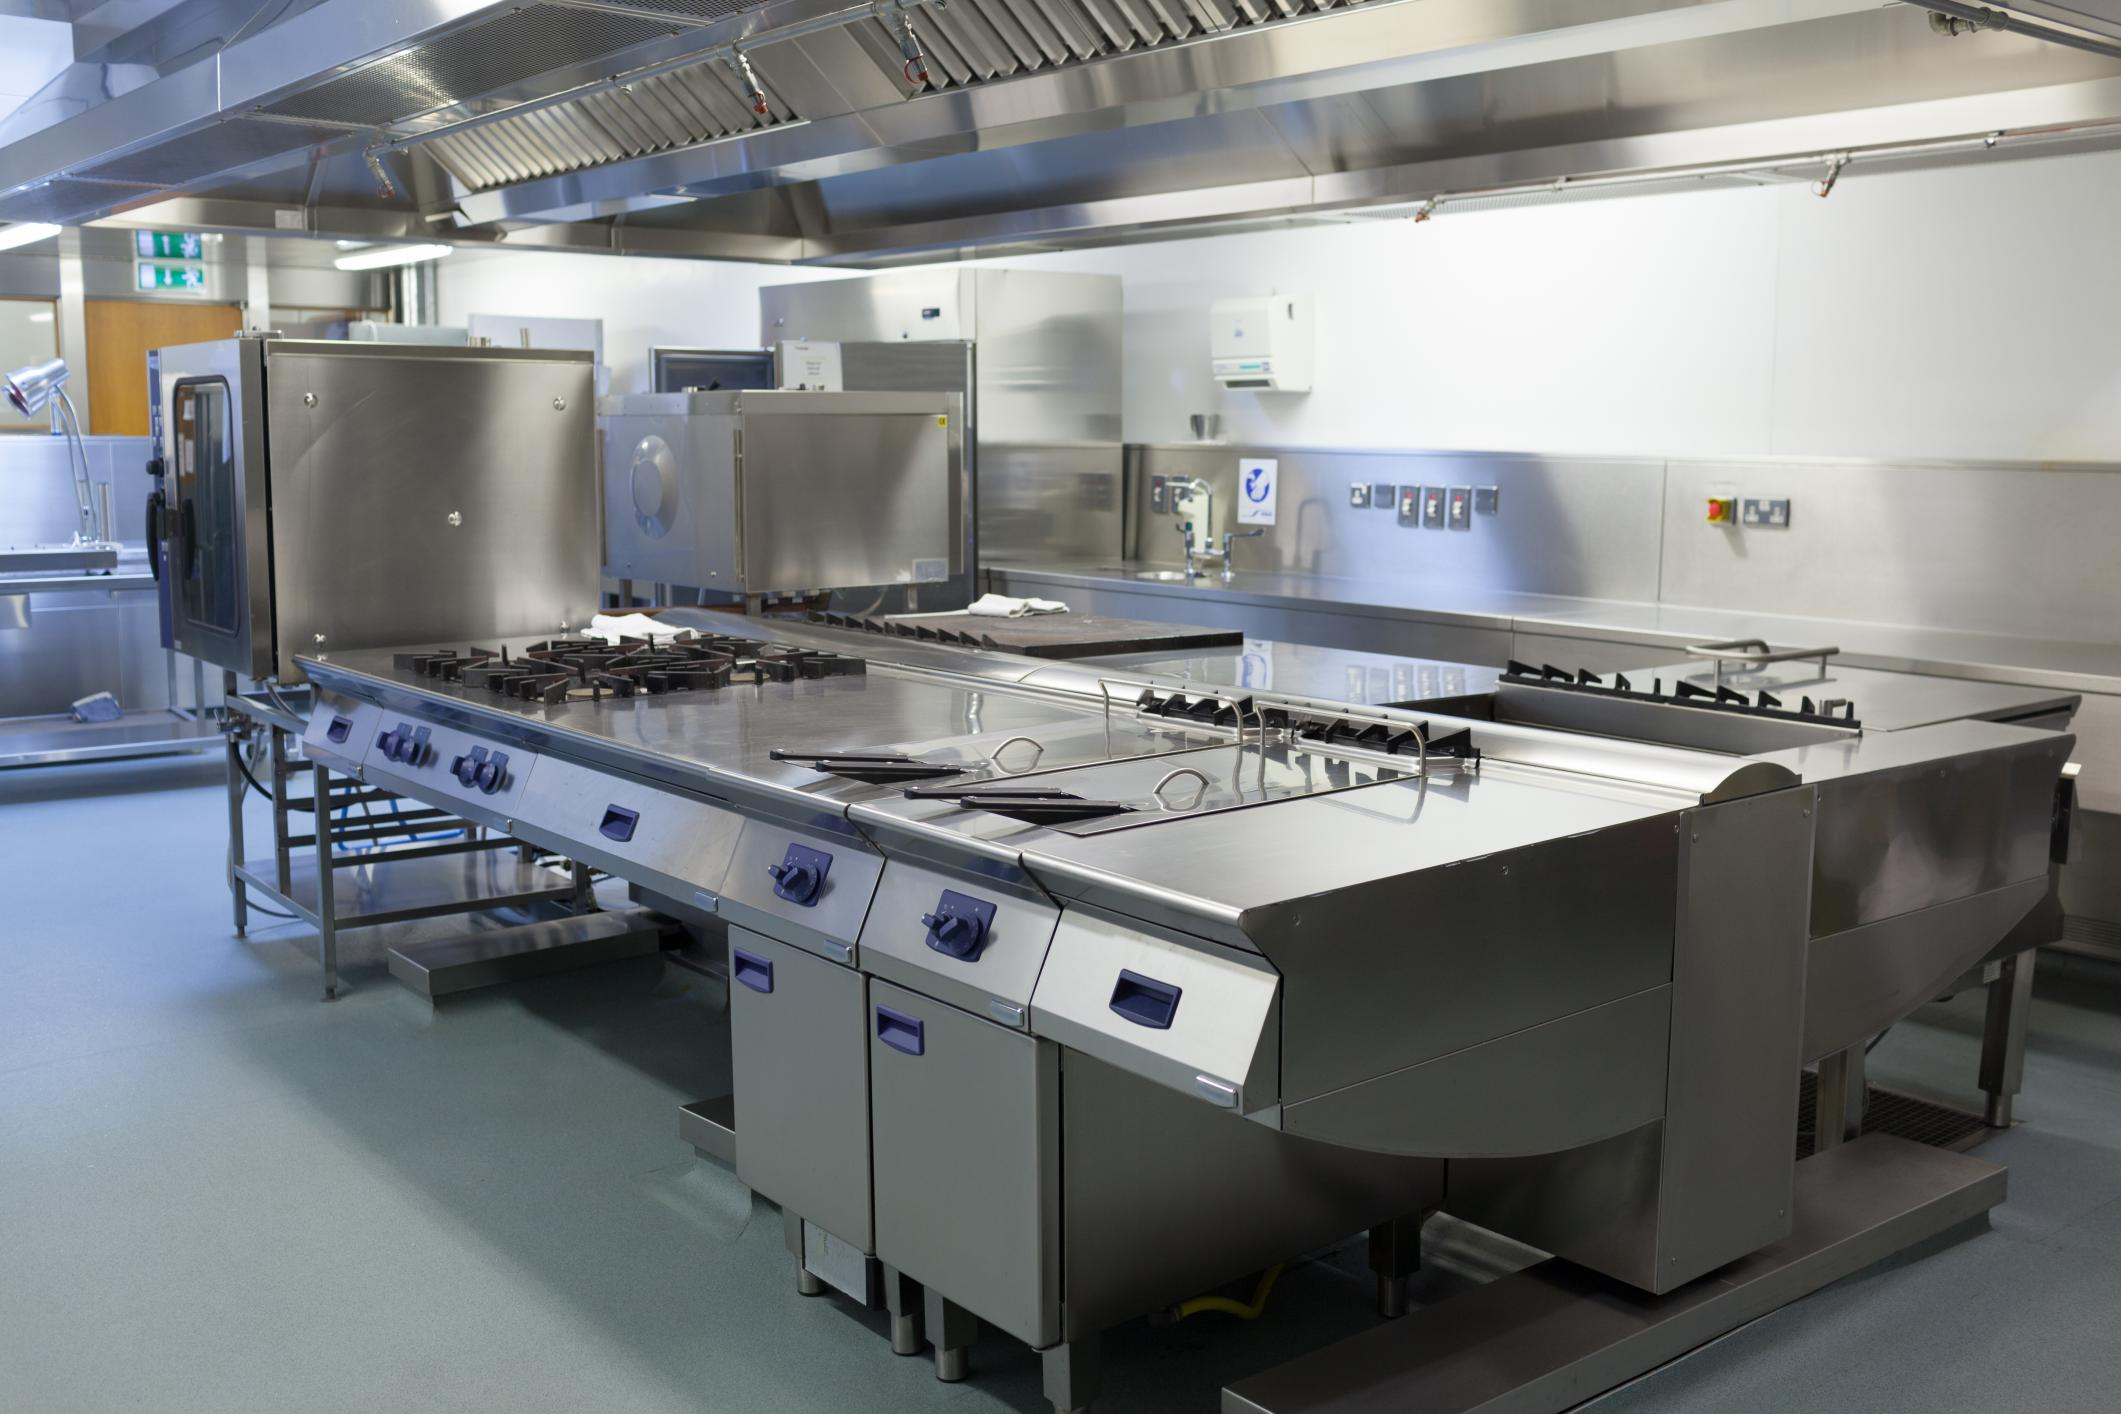 San Diego Hood Cleaning - Restaurant Cleaning Services